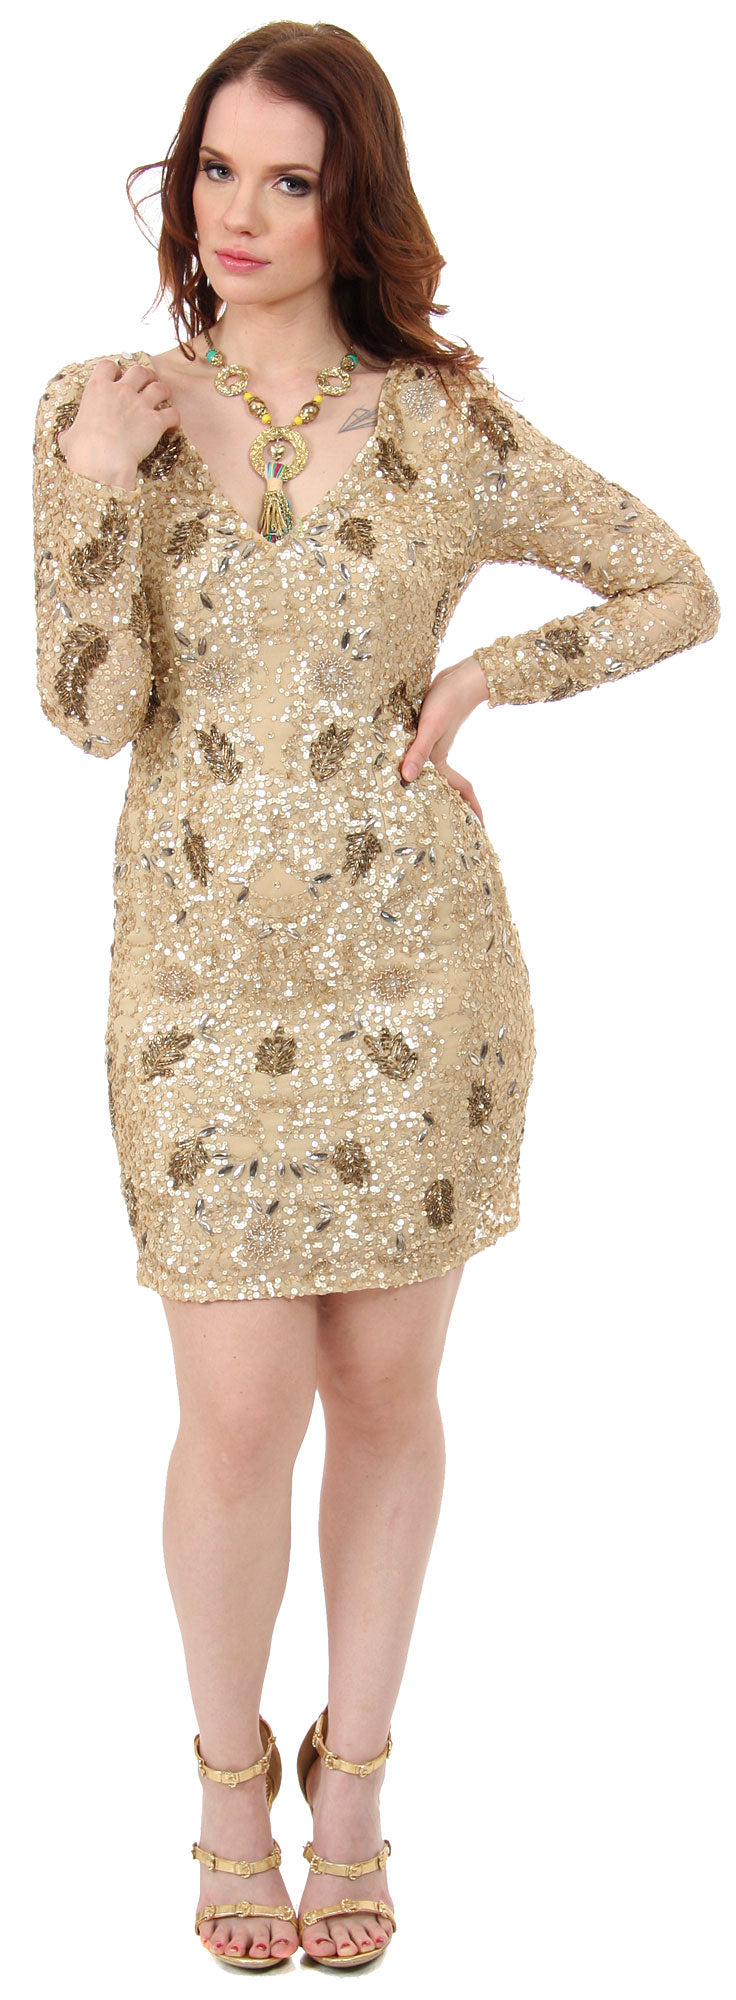 Image of V-neck Full Sleeves Short Sequin Beaded Party Prom Dress in Gold/Copper